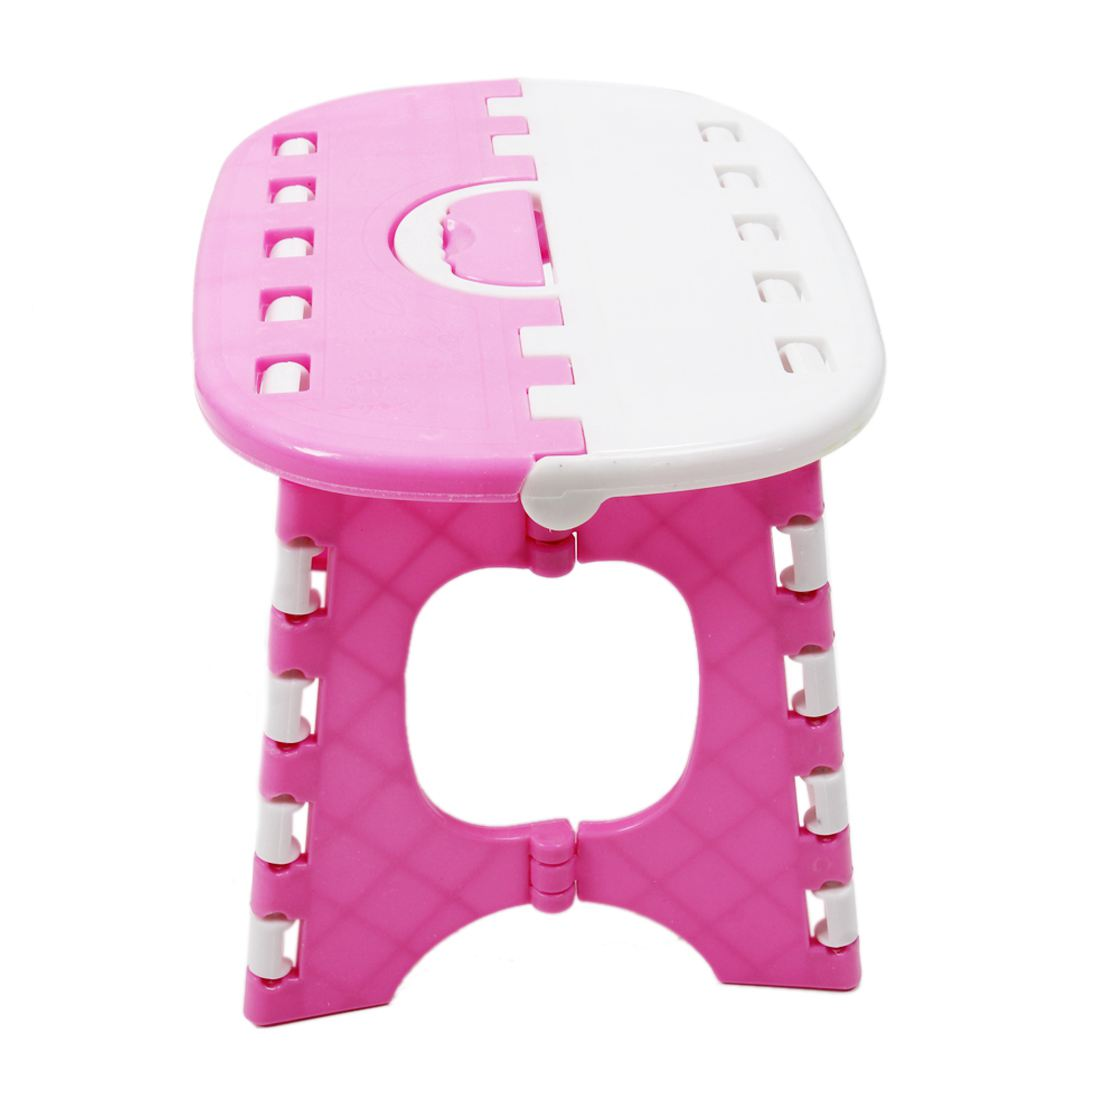 Best Plastic Folding 6 Type Thicken Step Portable Child Stools (pink) 24.5*19*17.5cm